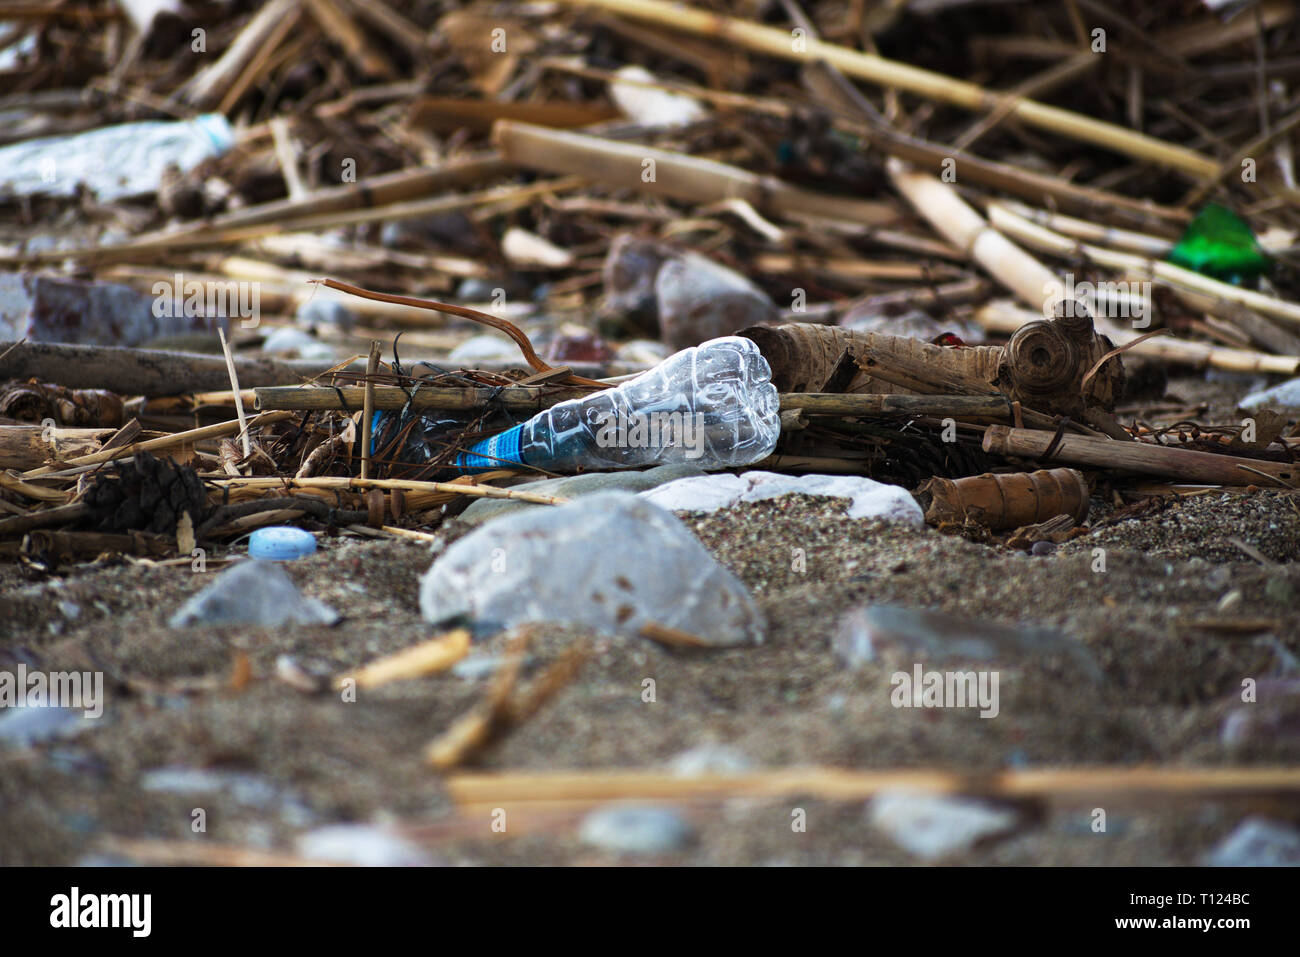 Spilled garbage on the beach.Empty used plastic bottle. - Stock Image